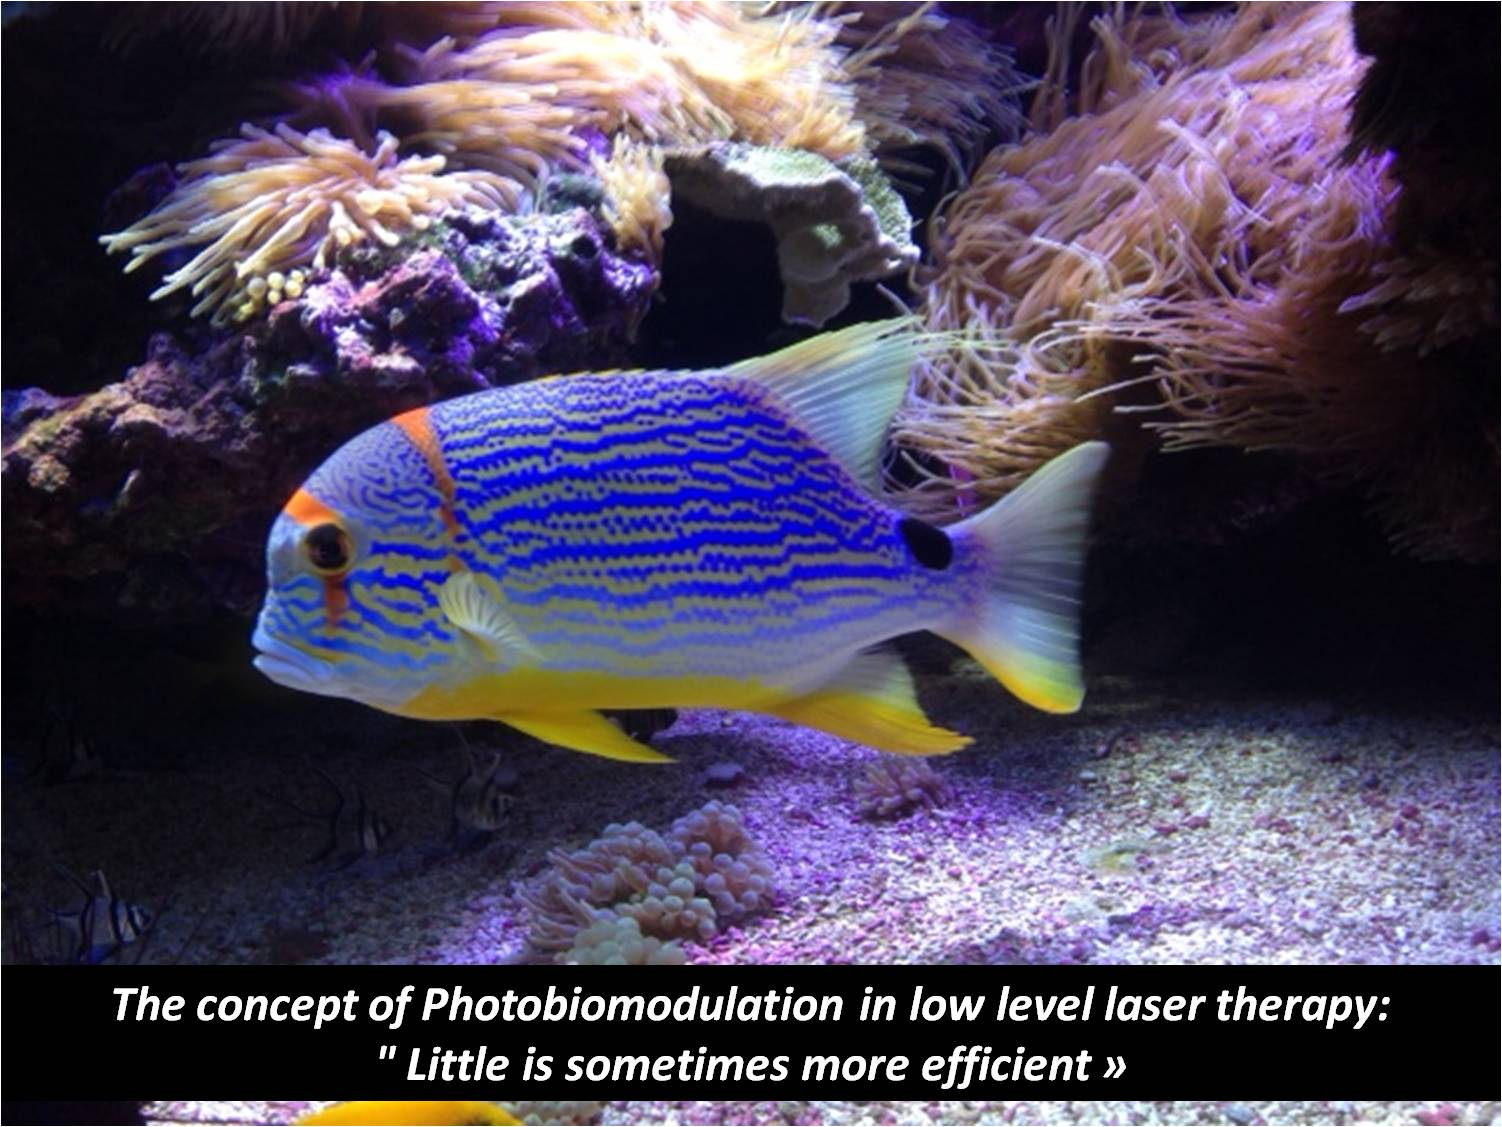 The concept of Photobiomodulation in low level laser therapy: